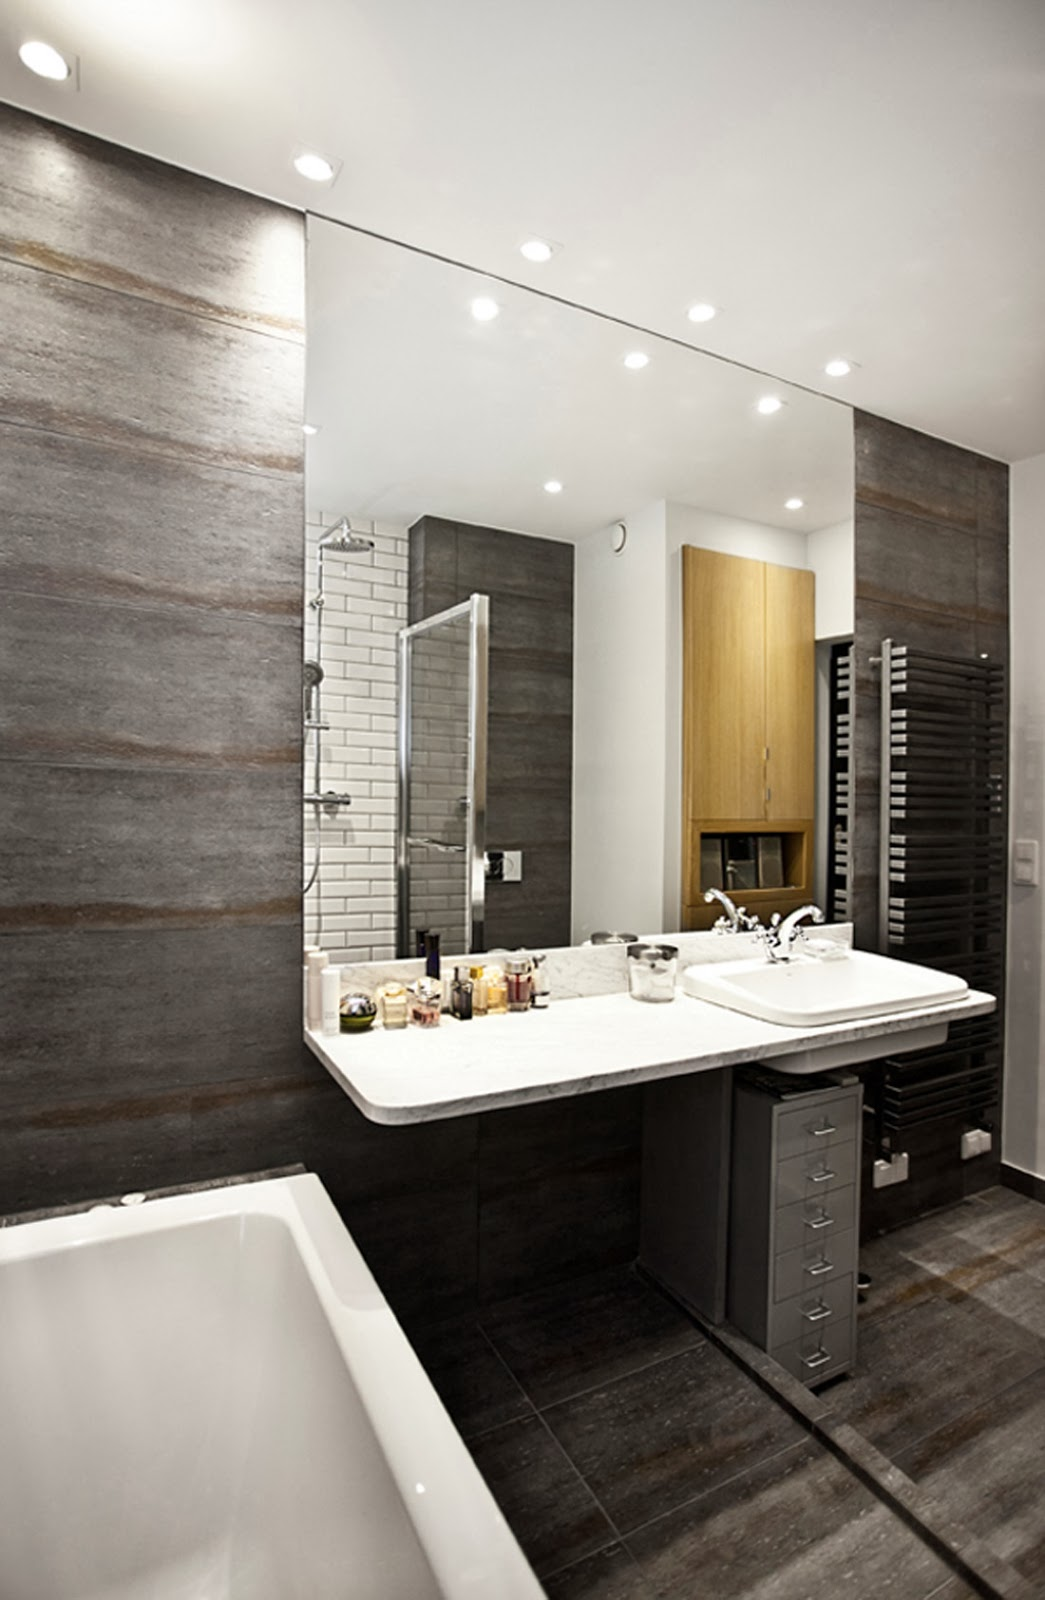 Loft bathroom ideas bathroom showers for Bathrooms designs